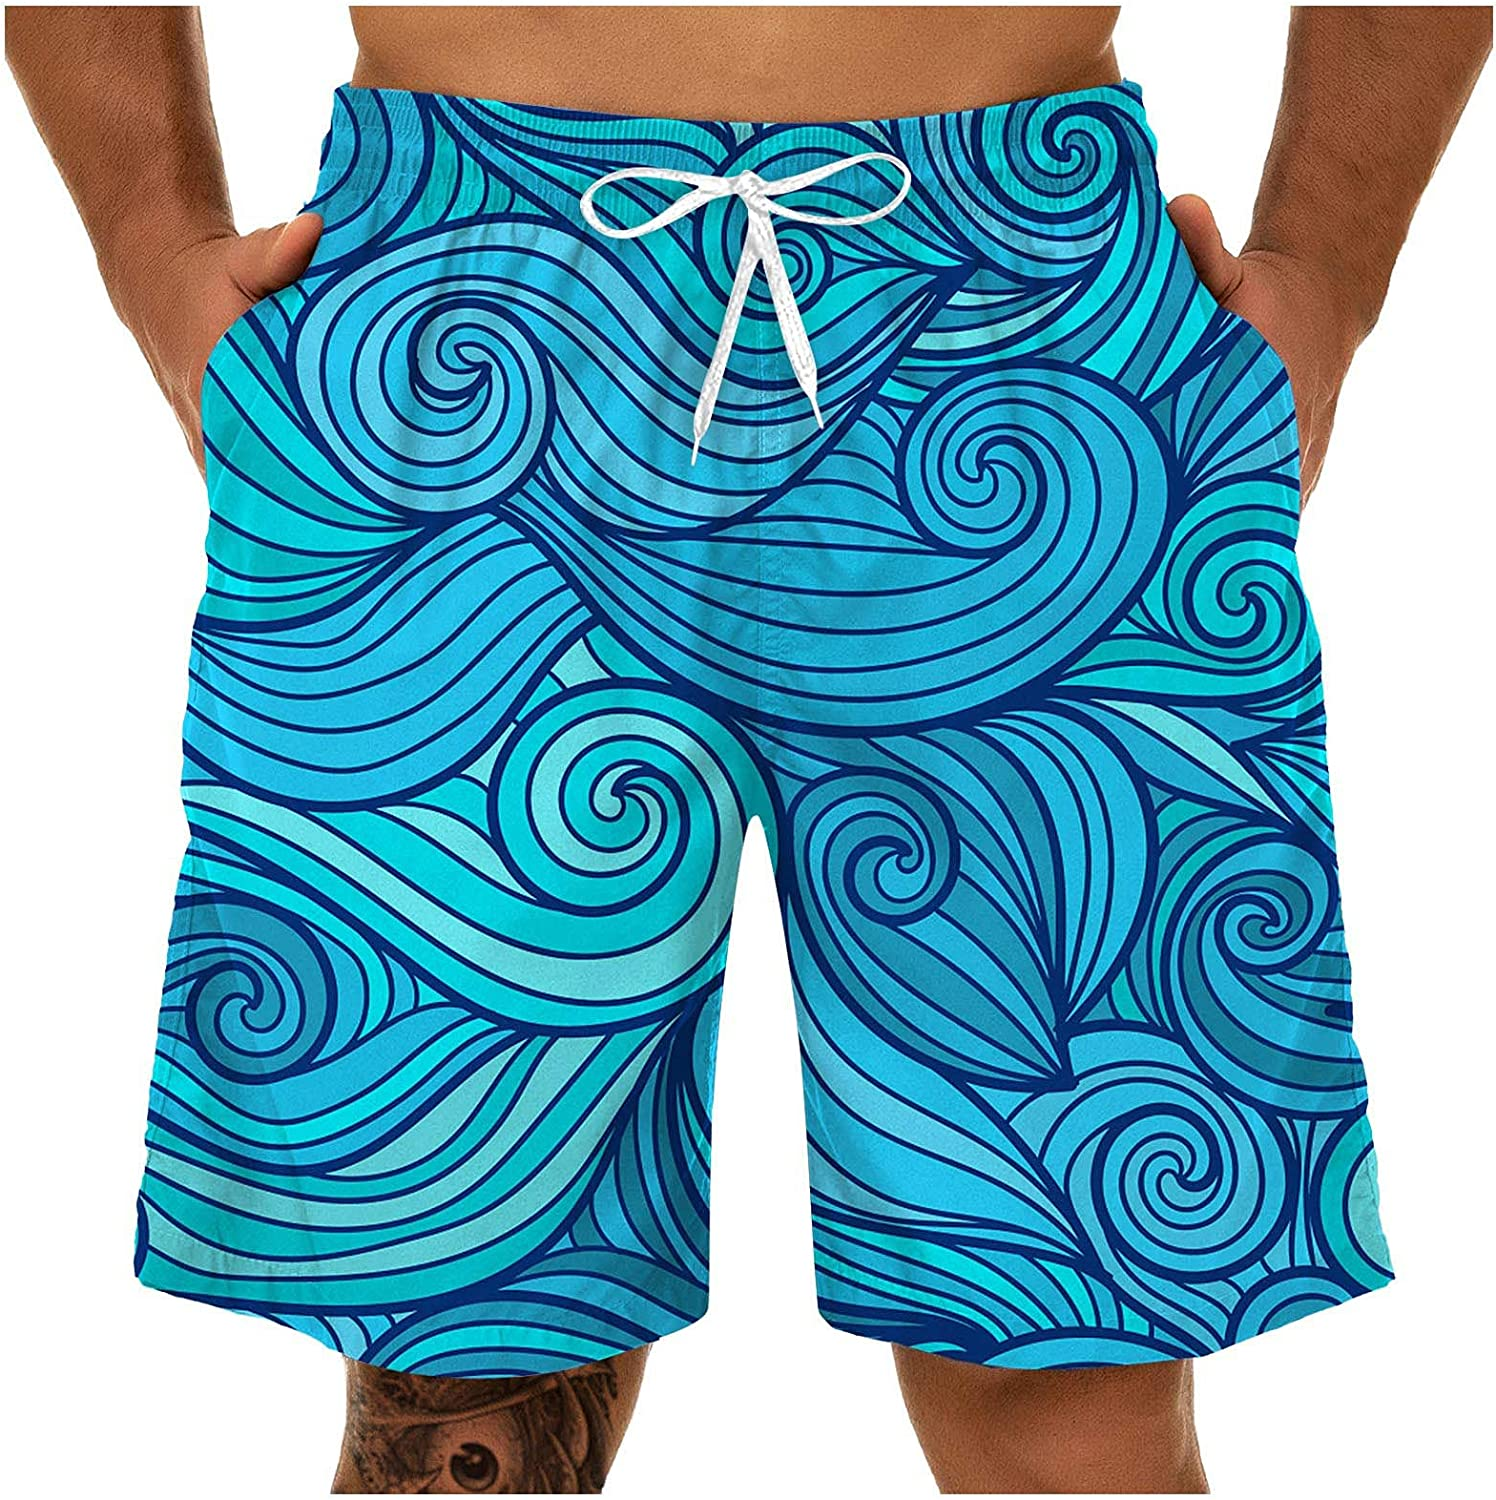 Baralonly Cash special price Swim Trunks for Men Max 89% OFF Beachwear Comfy Printed Wo Summer